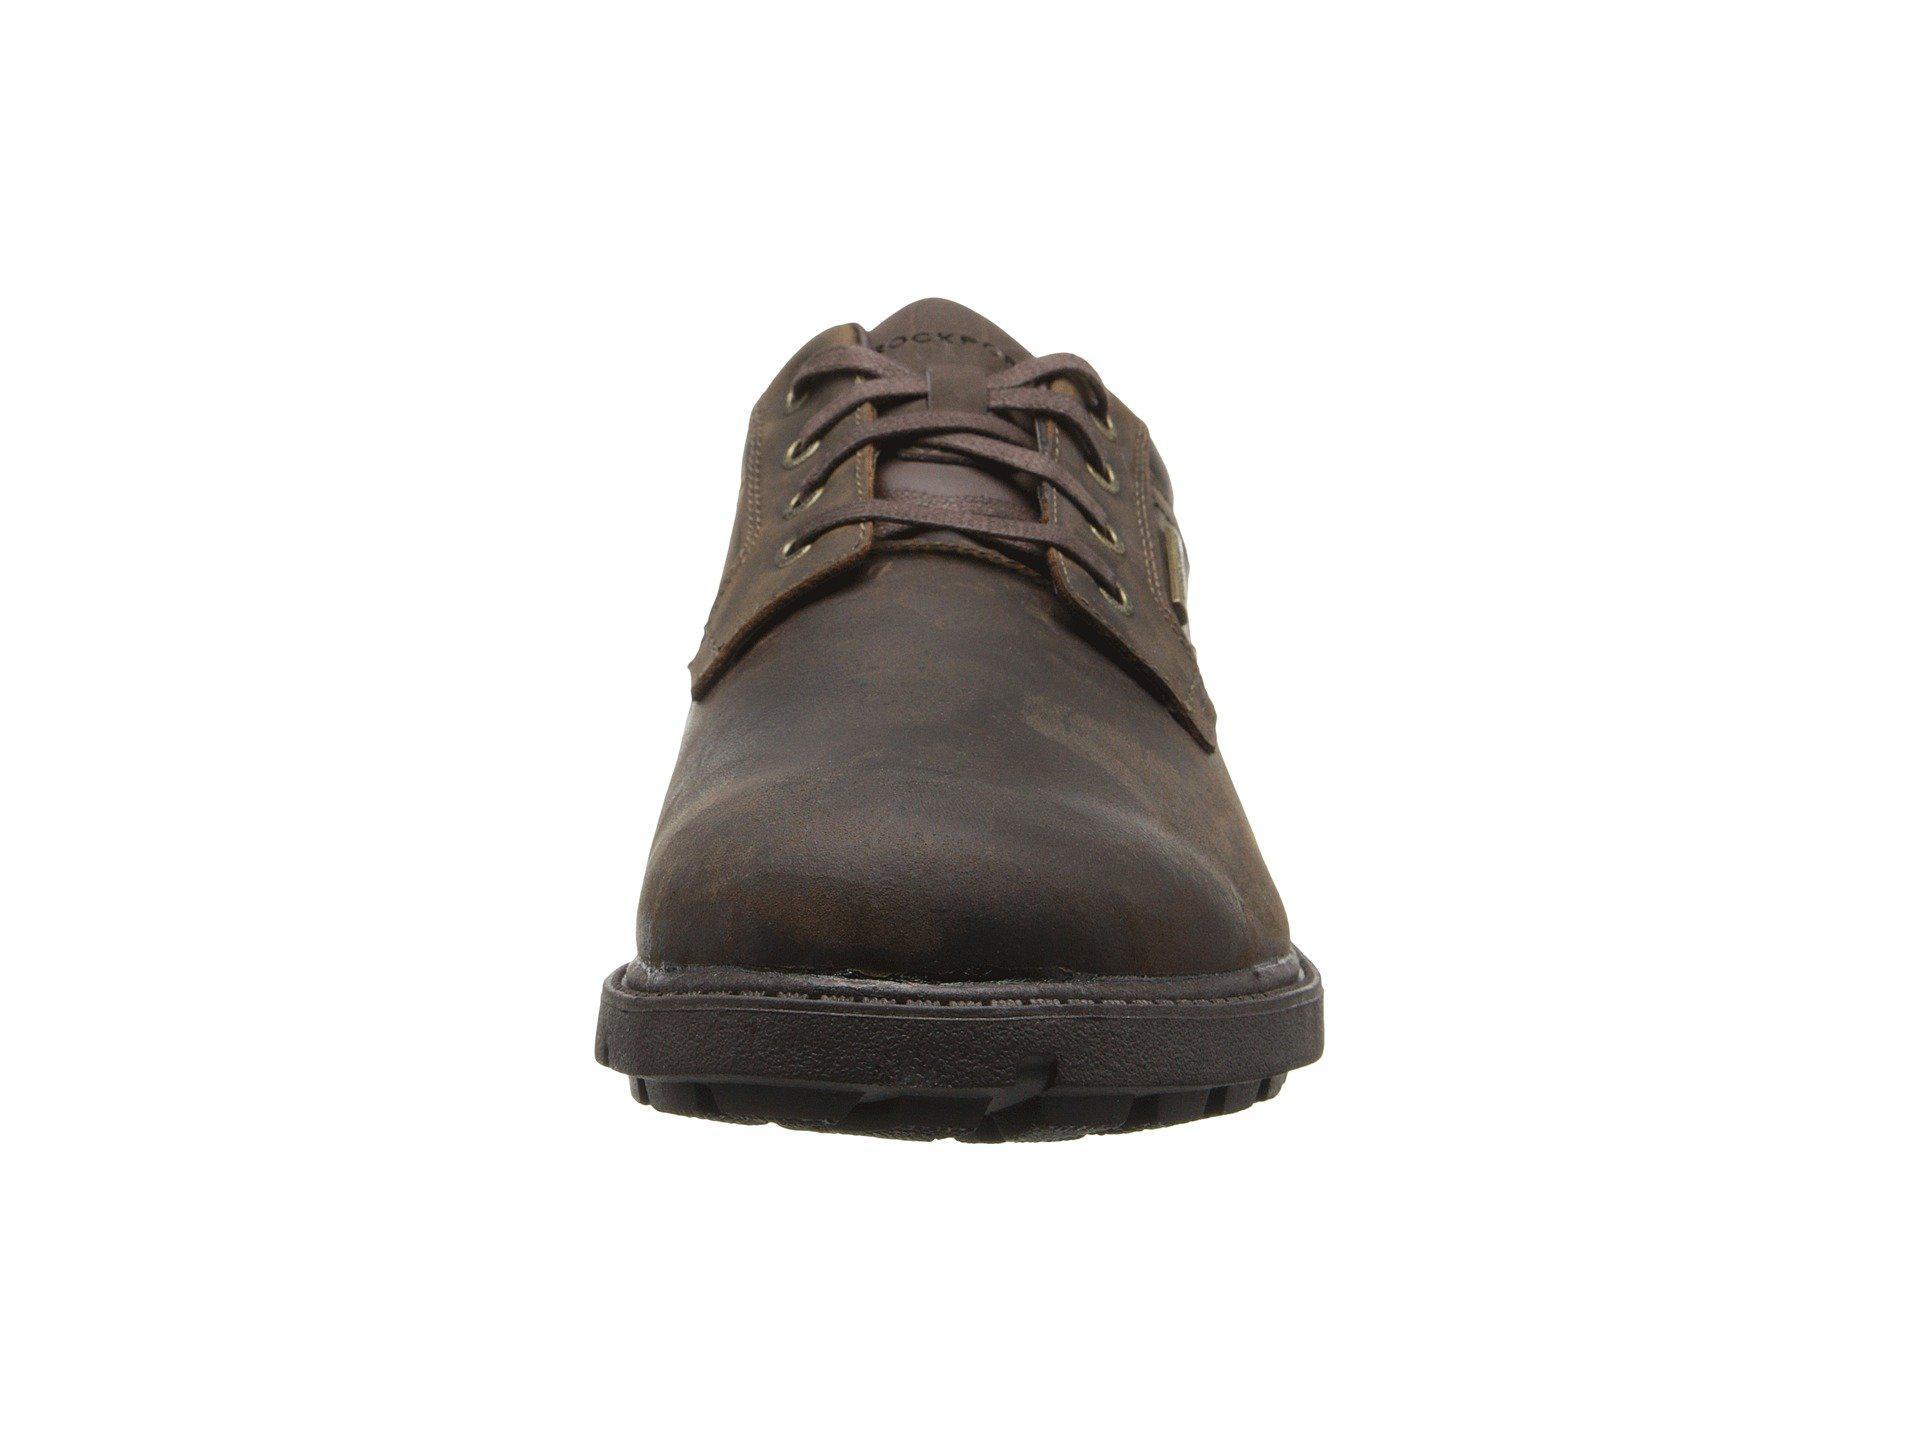 b11548f1732a Rockport - Brown Storm Surge Water Proof Plain Toe Oxford for Men - Lyst.  View fullscreen